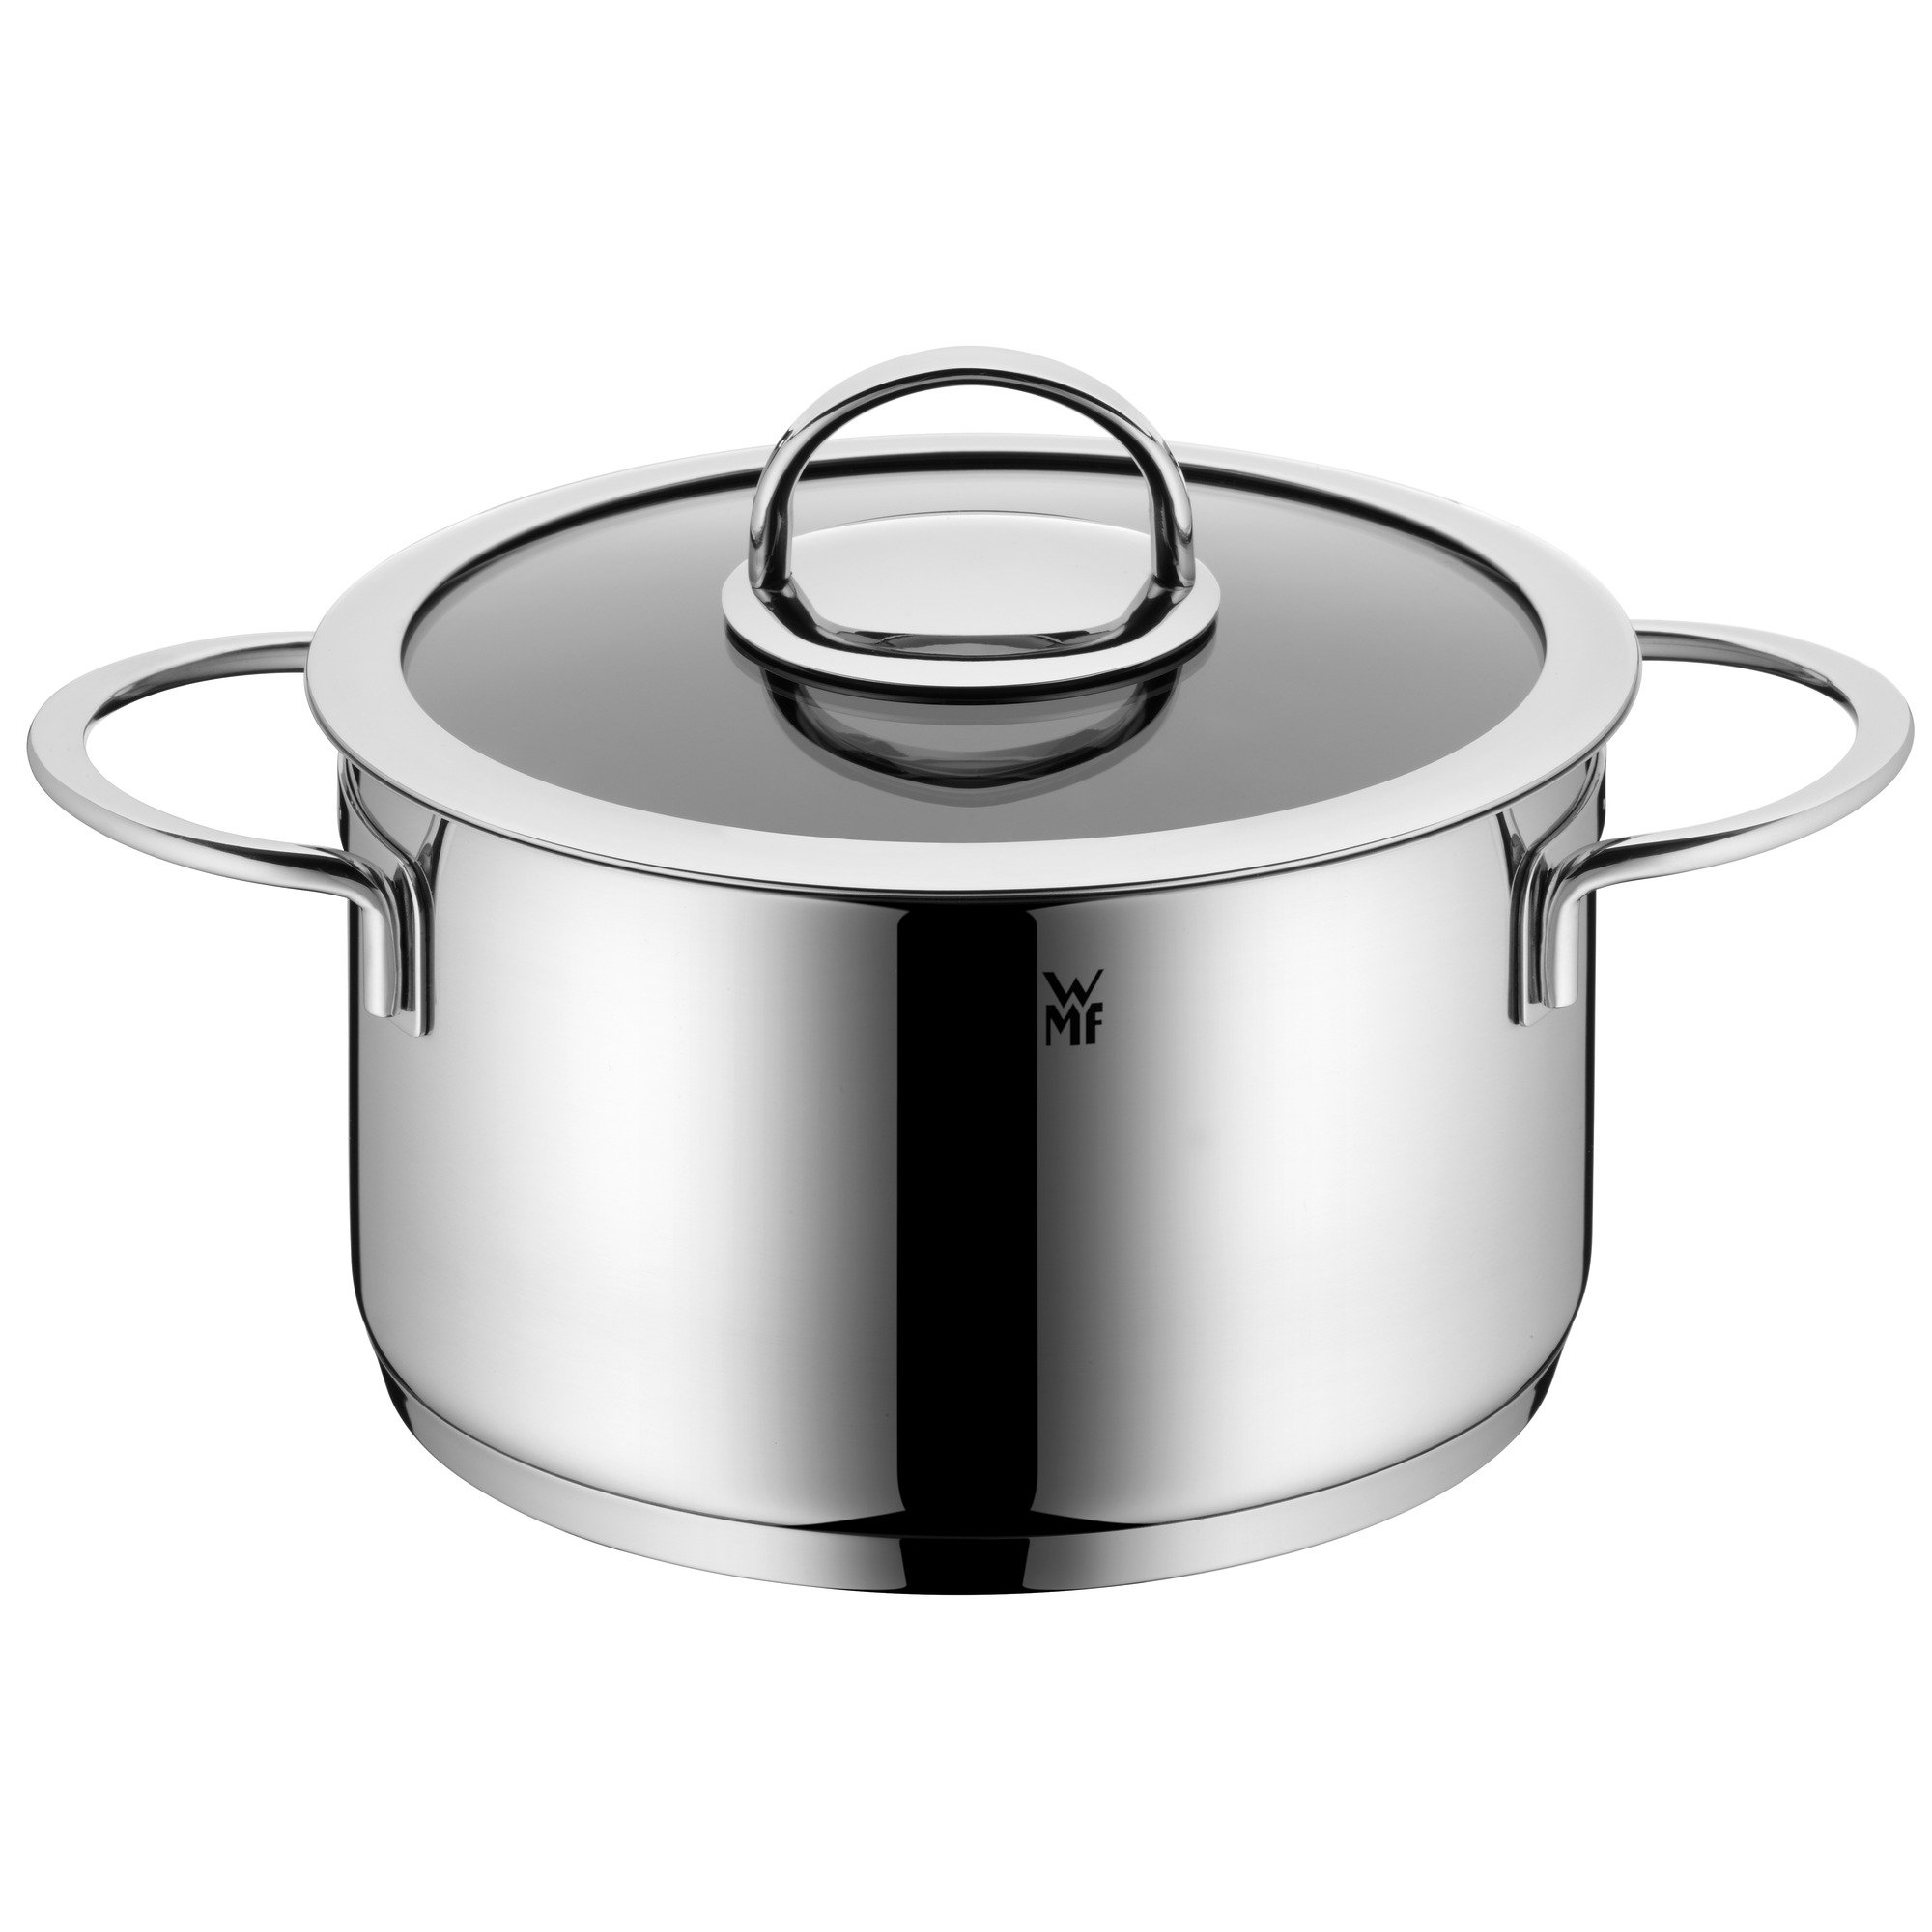 WMF High Casserole Ø 20 cm Approx. 3.8L Vignola Coated Glass Lid Cromargan Stainless Steel Polished Suitable for Induction Hobs Dishwasher-Safe